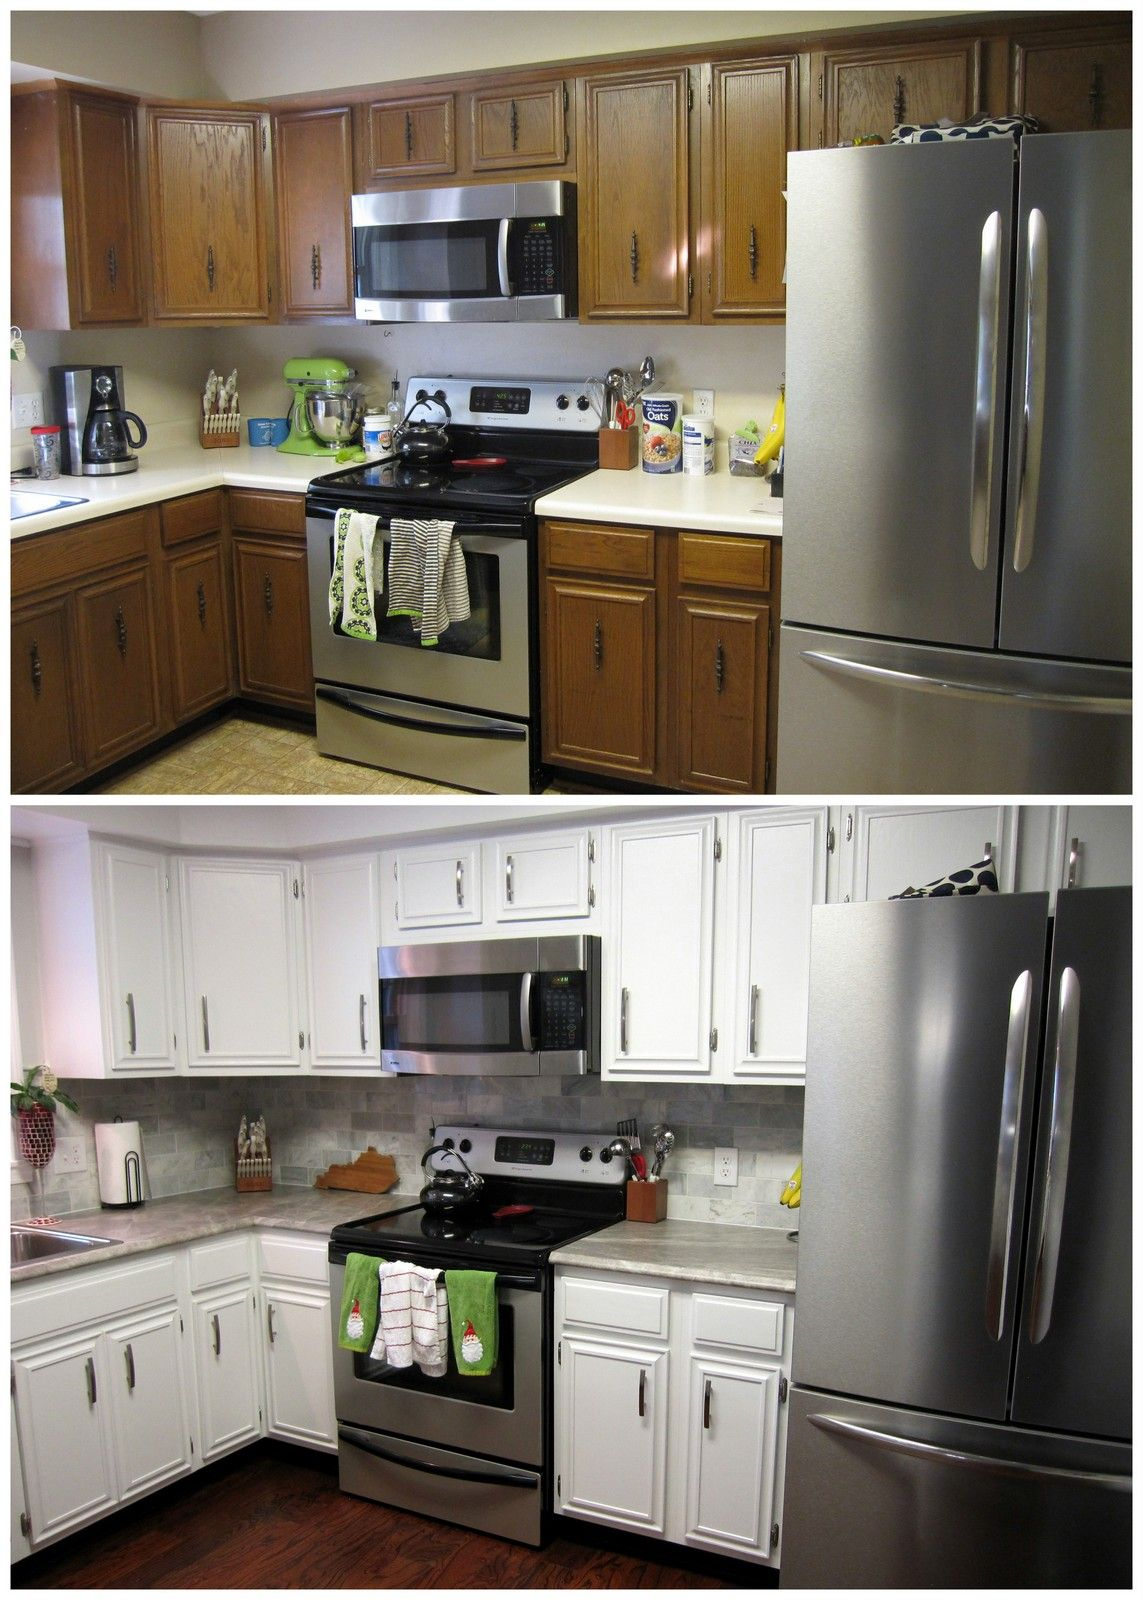 Remodelaholic   DIY Refinished and Painted Cabinet Reviews ...